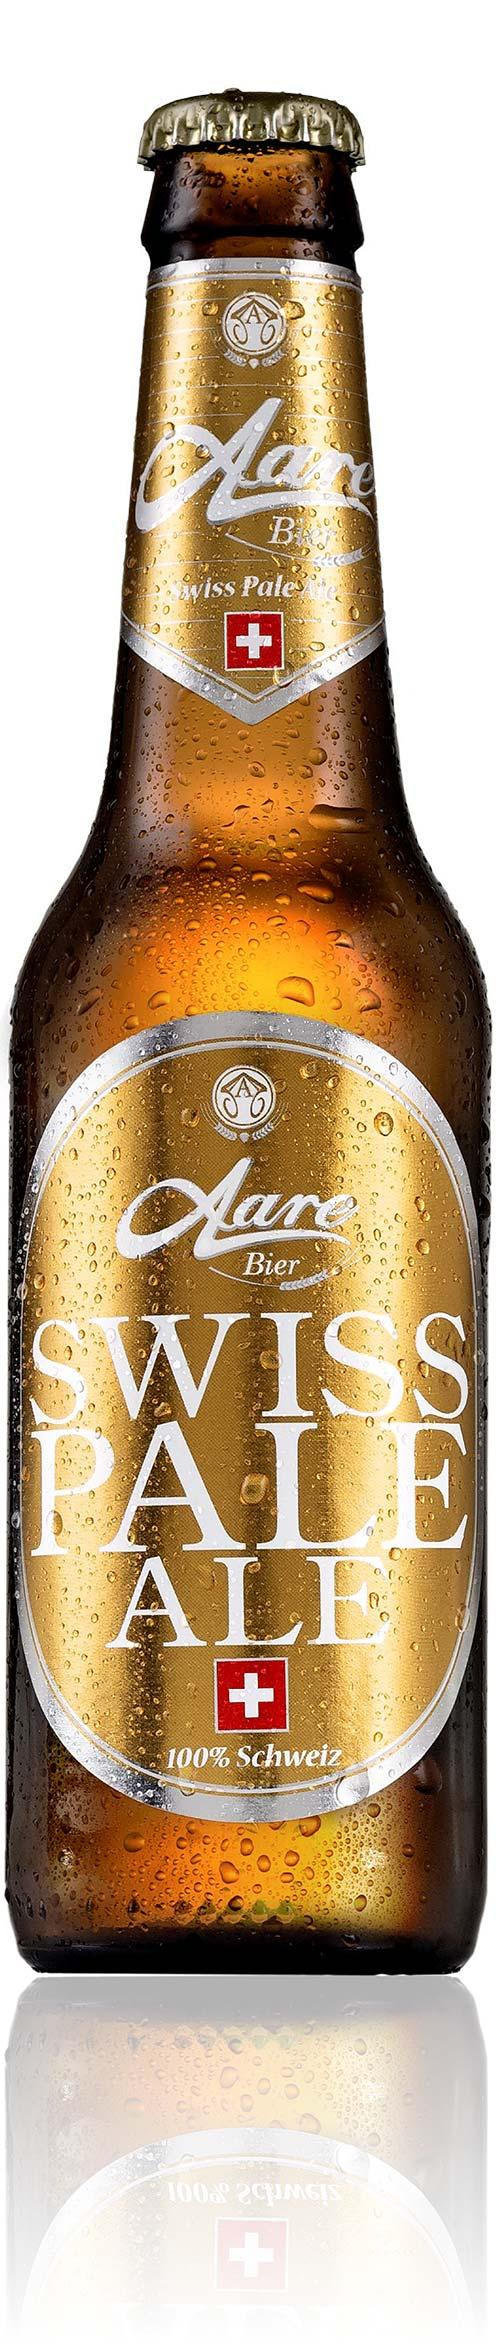 Swiss Pale Ale